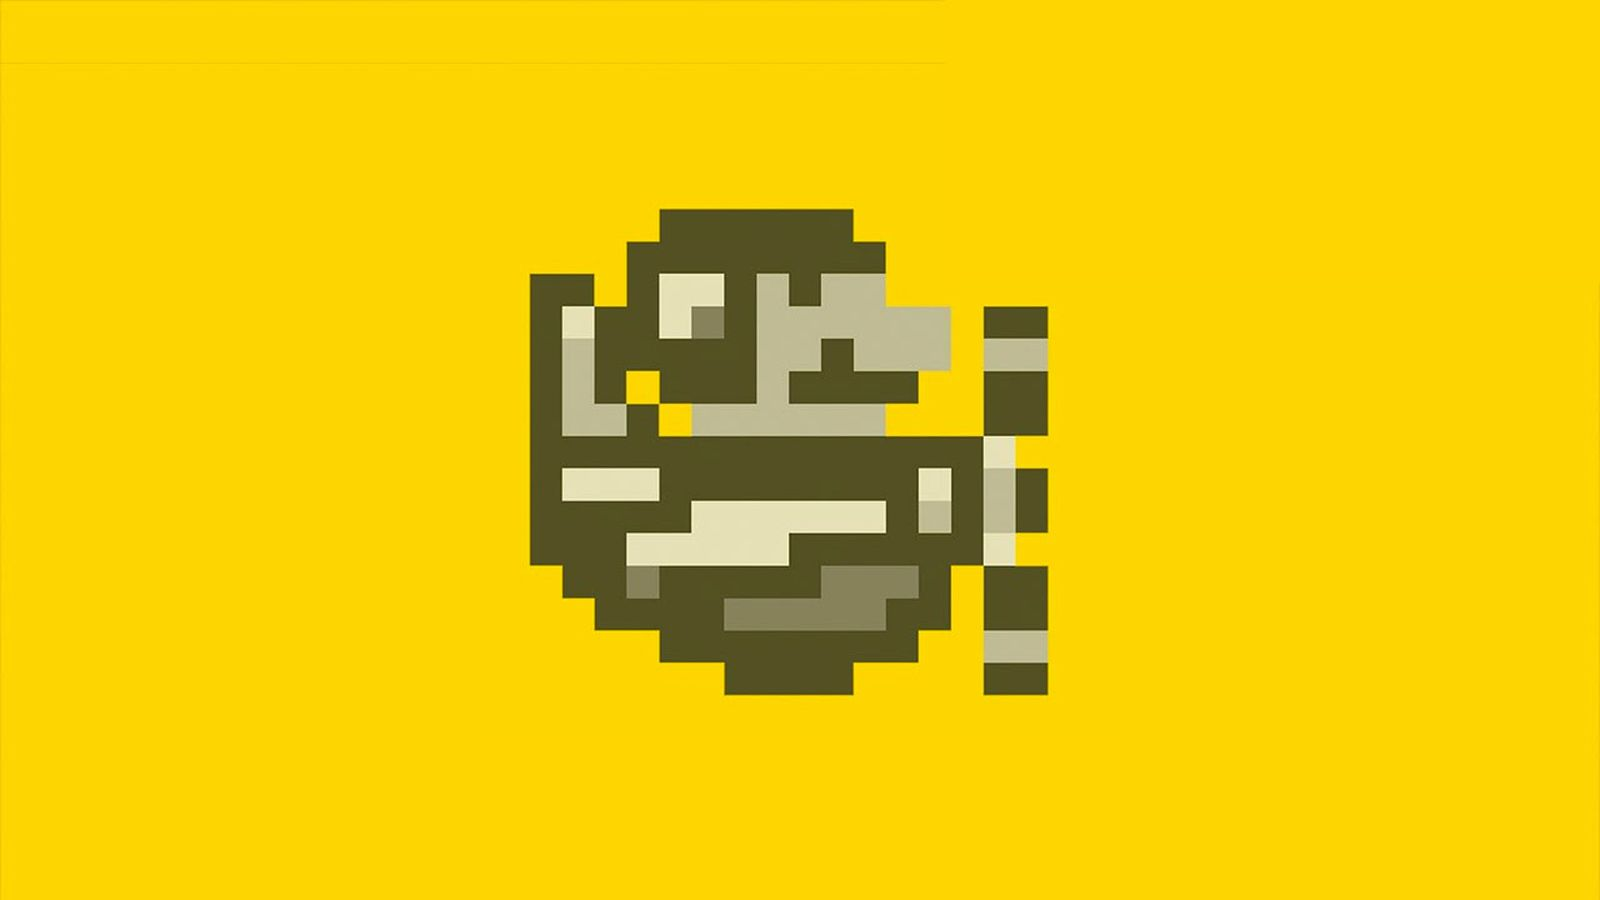 Modojo | Super Mario Maker Gets a New Course and Costume Thanks to Southwest Airlines